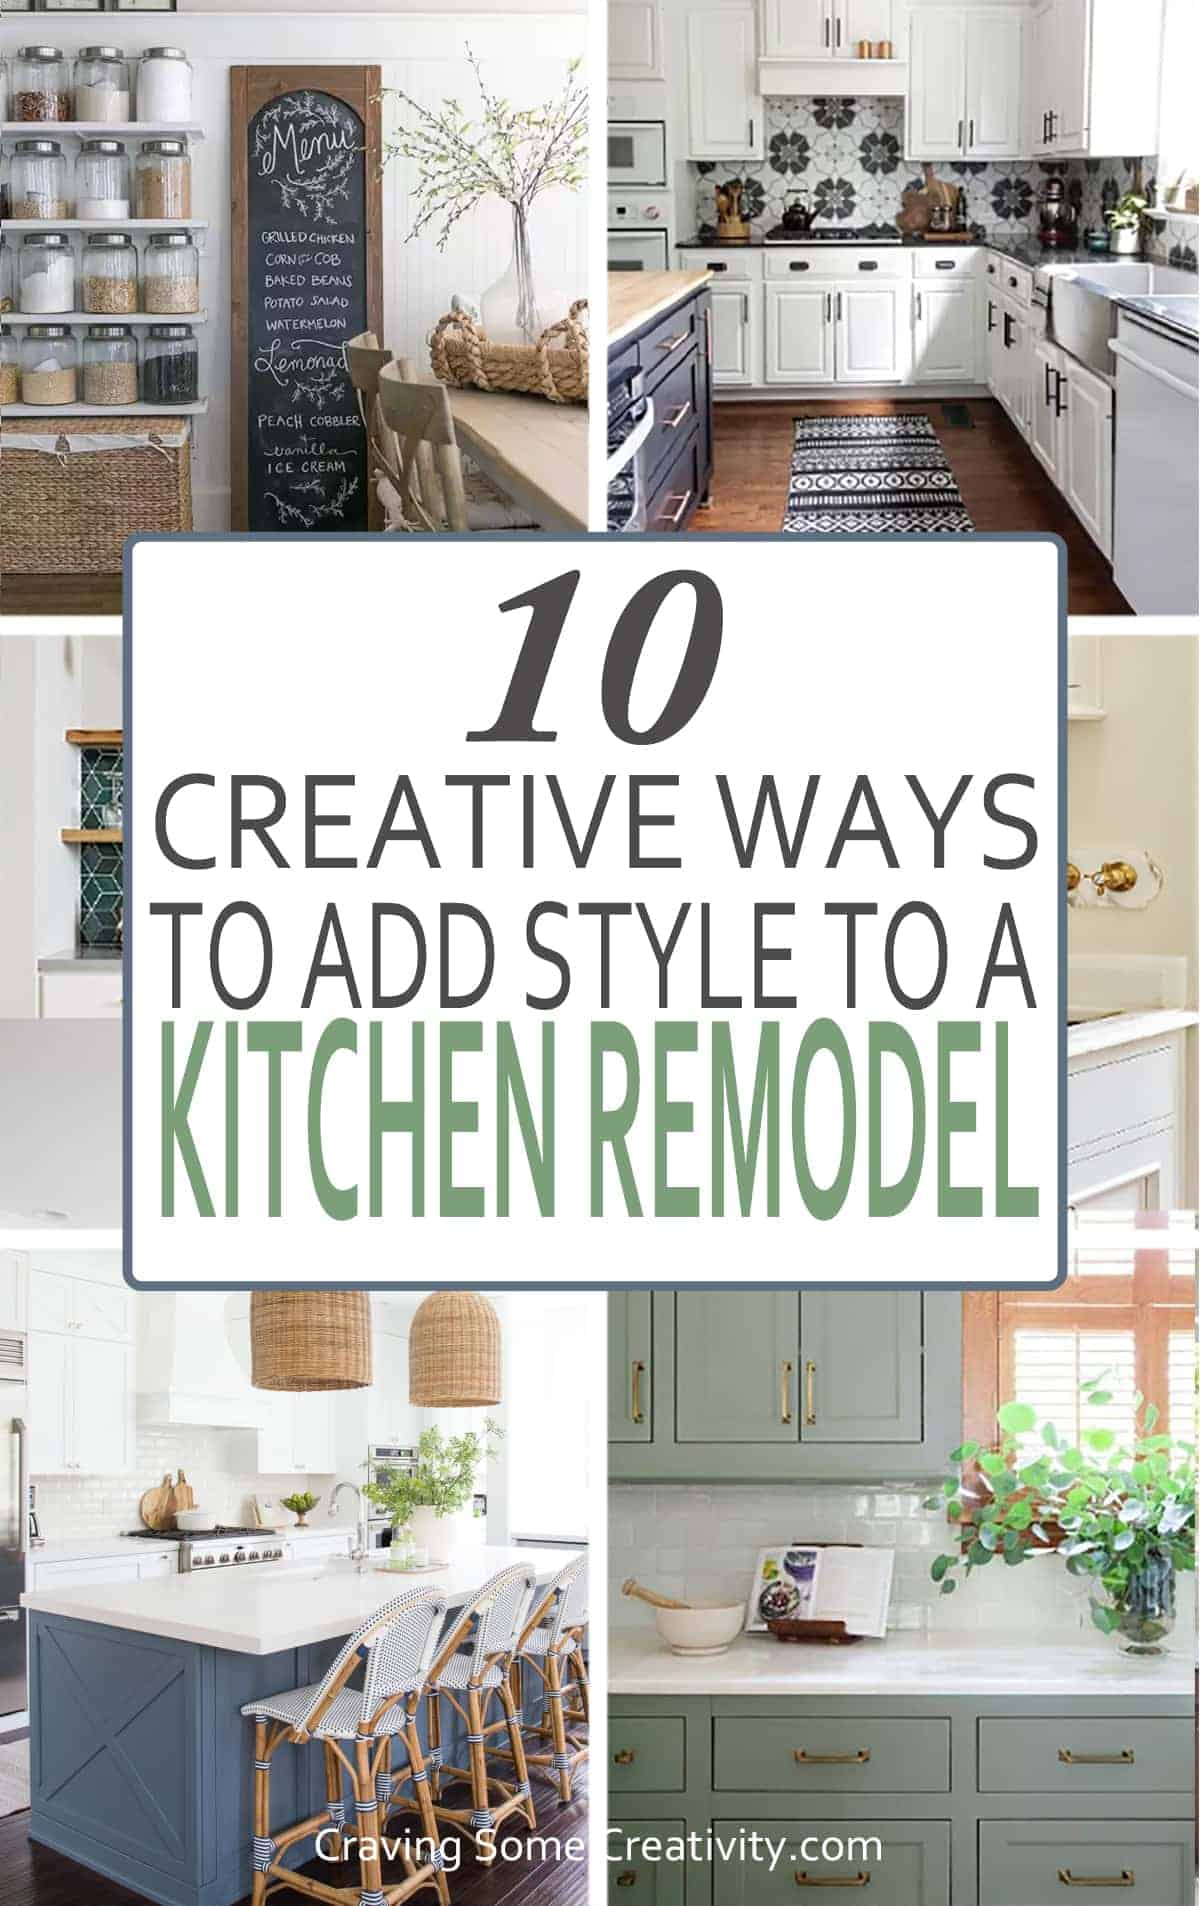 Collage of stylish kitchen remodel ideas with post title.